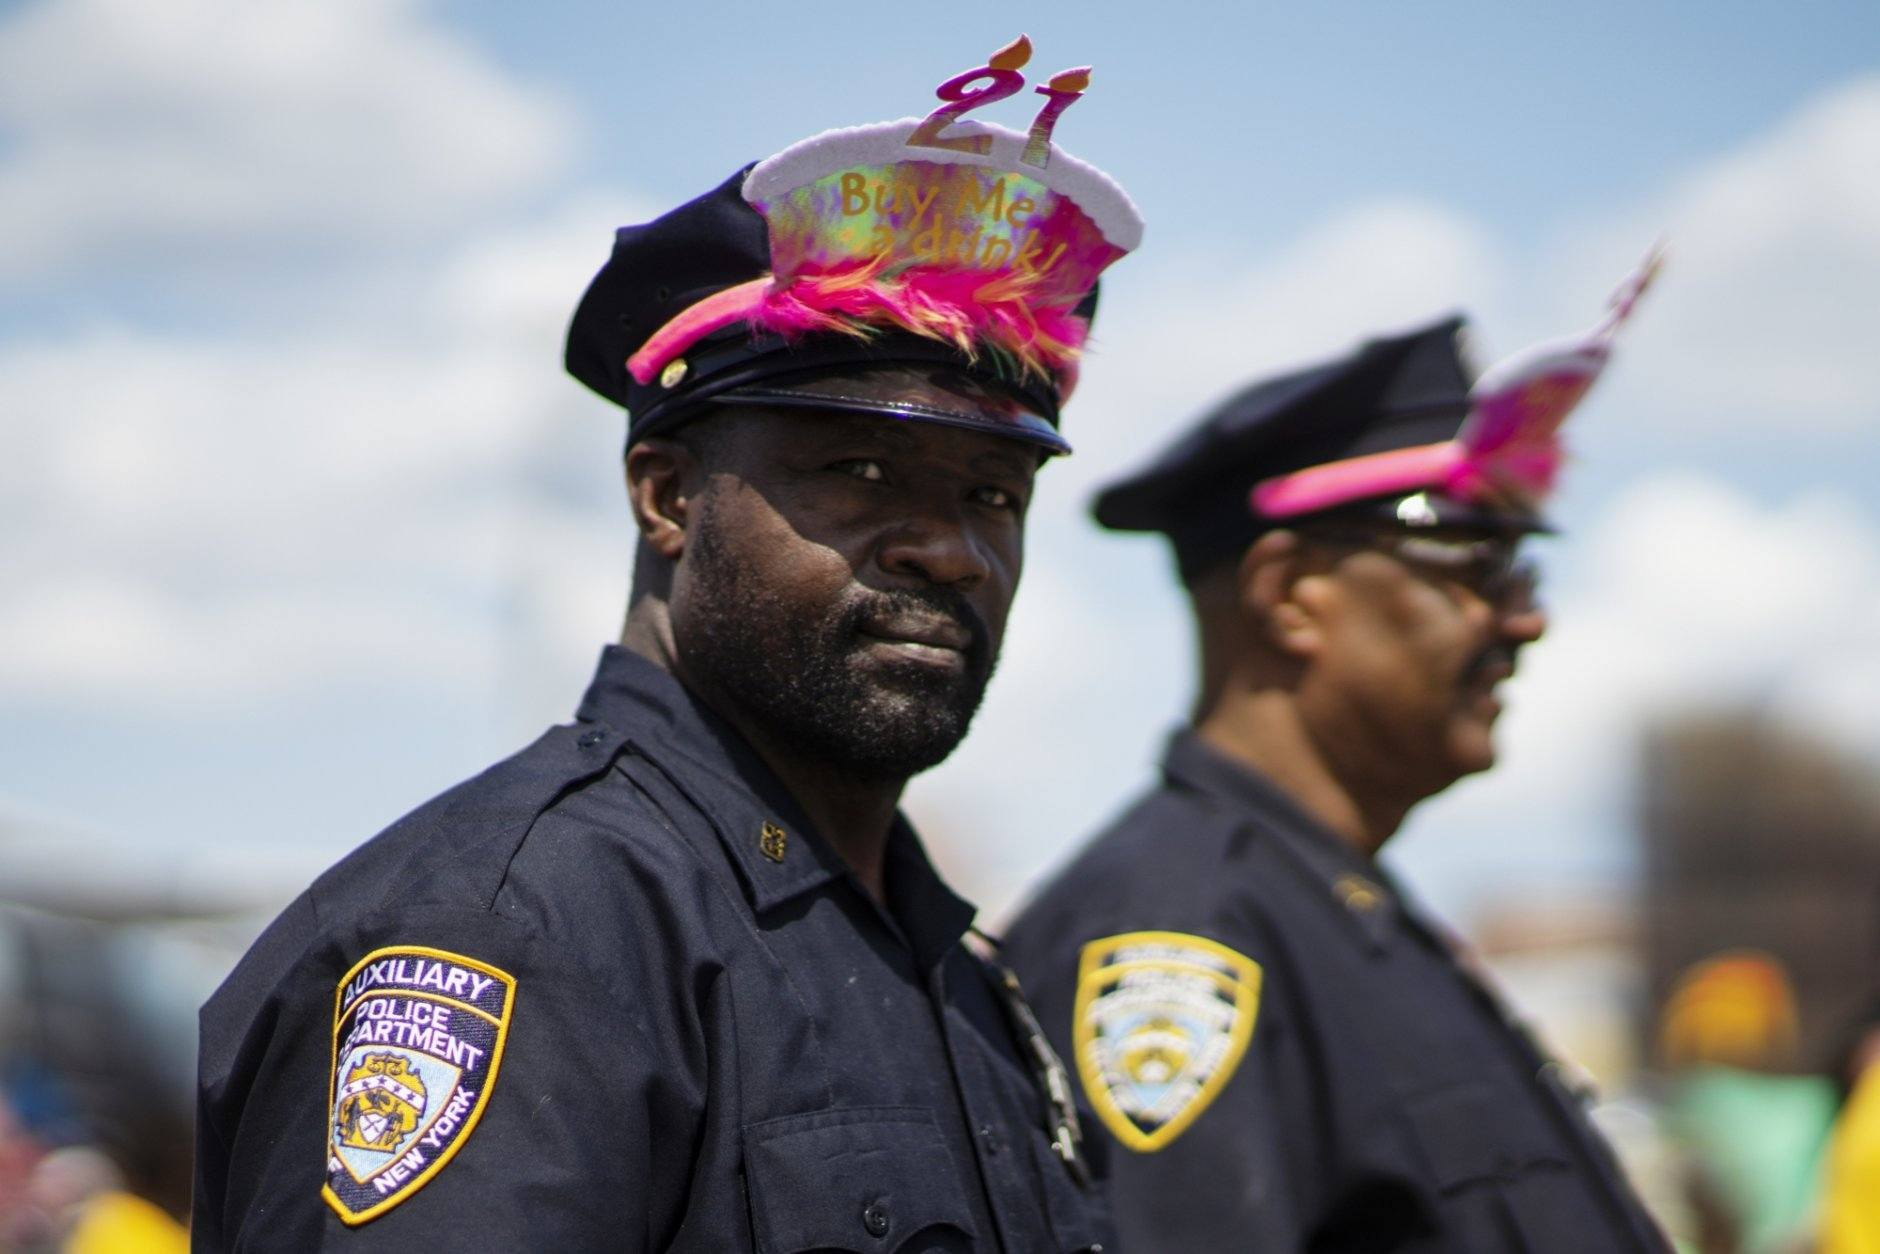 NYPD officers stand guard as as parade attendees in costume make their way along Surf Avenue during the 37th annual Mermaid Parade at Coney Island, Saturday, June 22, 2019 in New York. (AP Photo/Eduardo Munoz Alvarez)